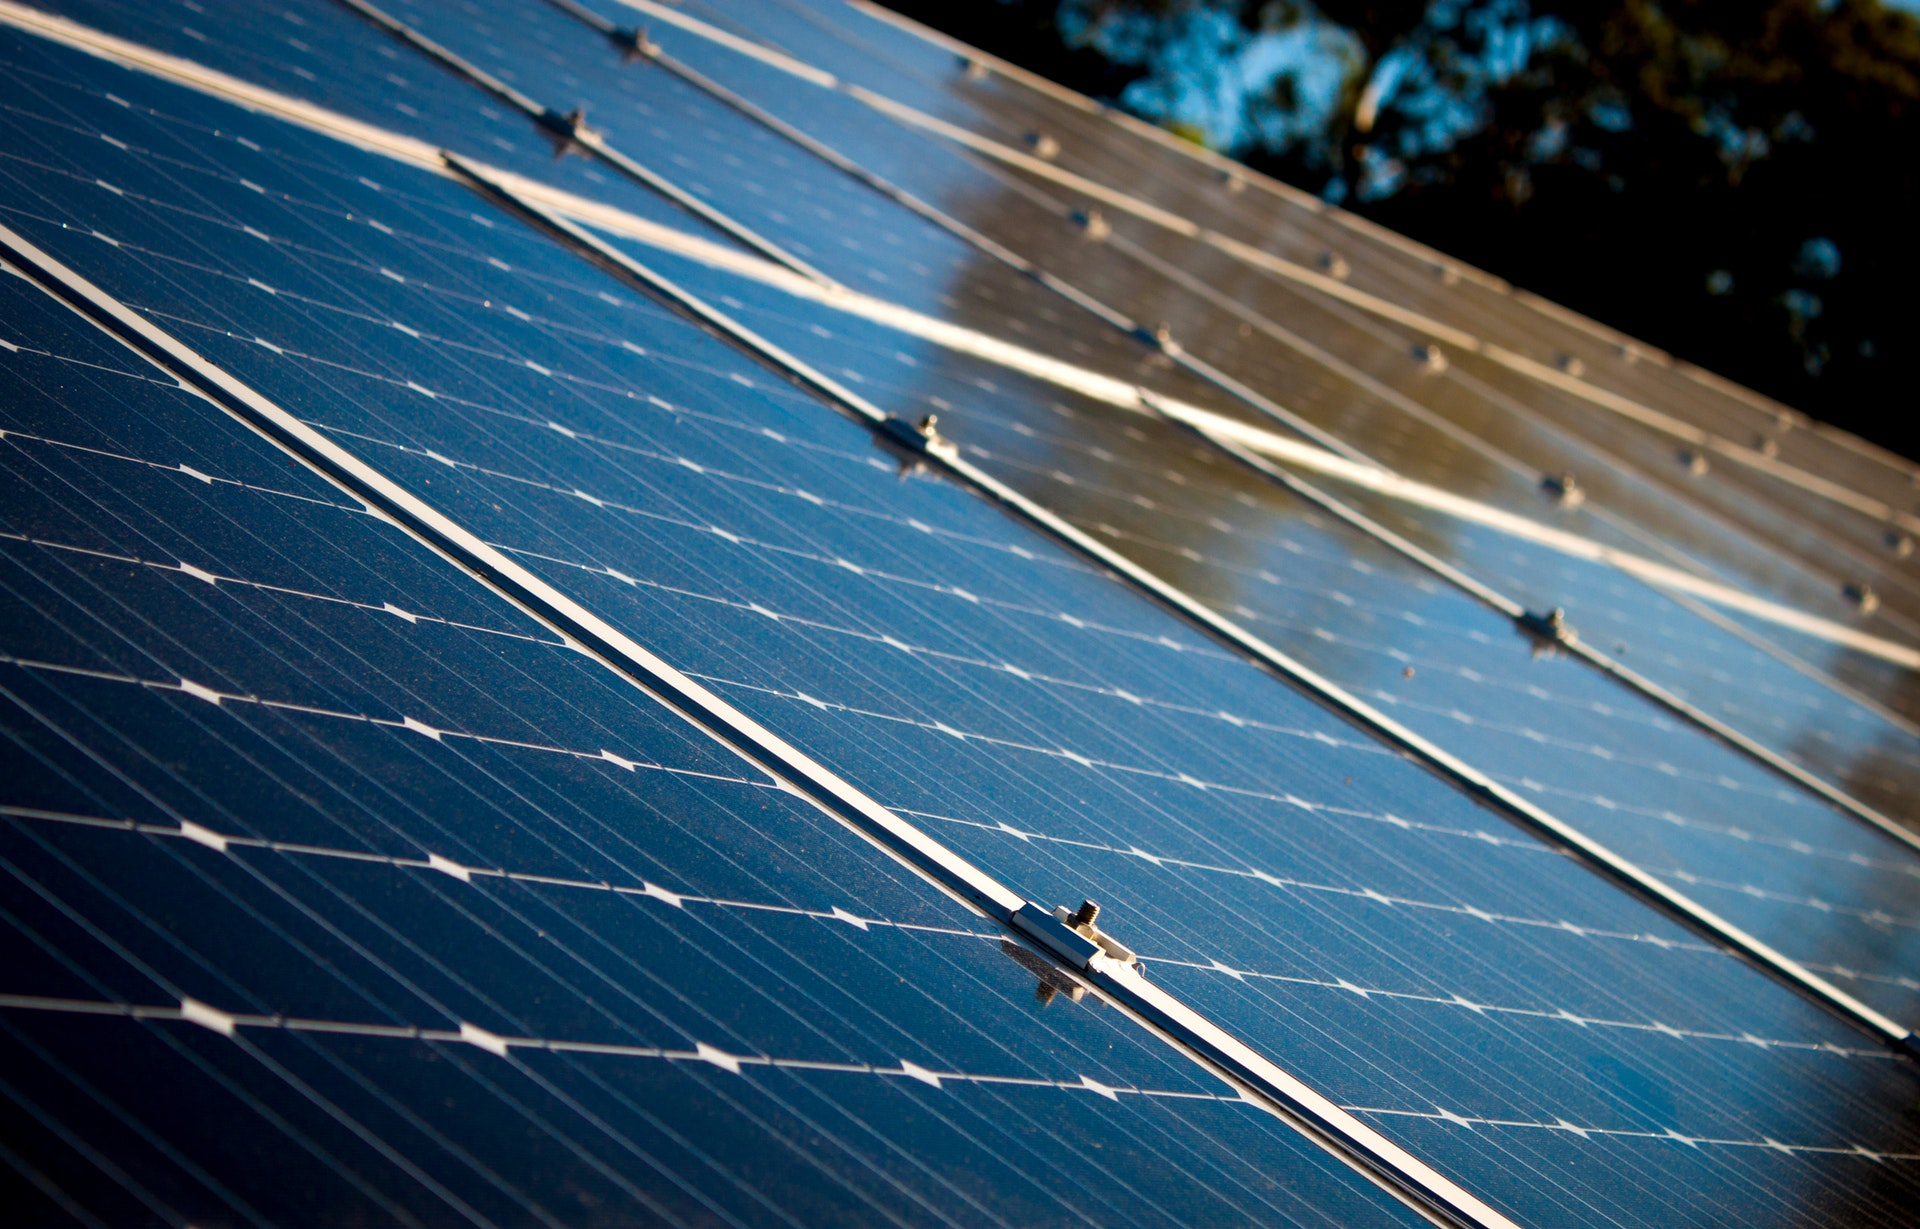 Solar Panels - Solar Photovoltaic Installers - The 14 Best Engineering Jobs For The Future